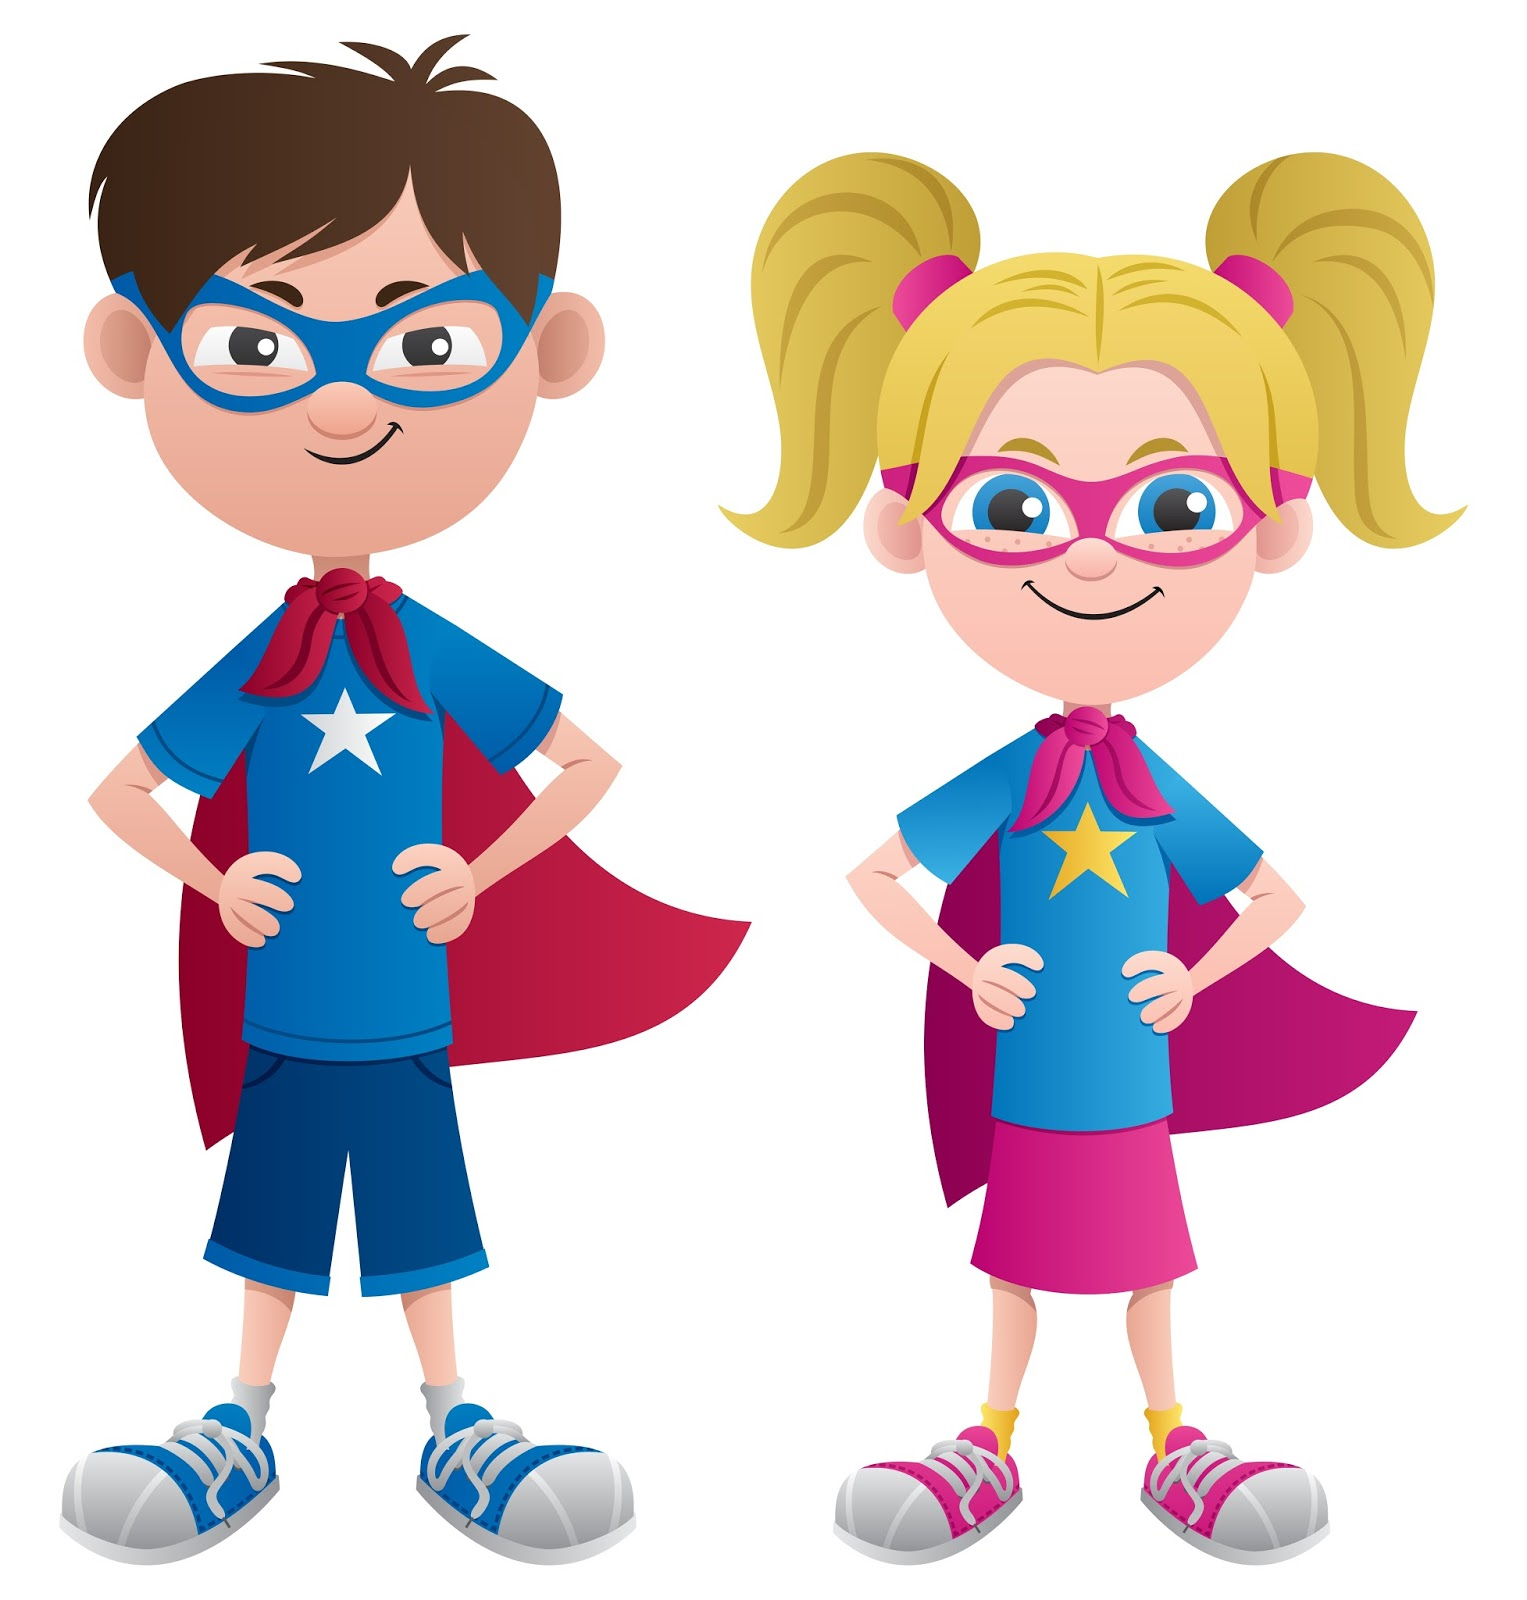 Superhero Kids - Light Bulbs and Laughter